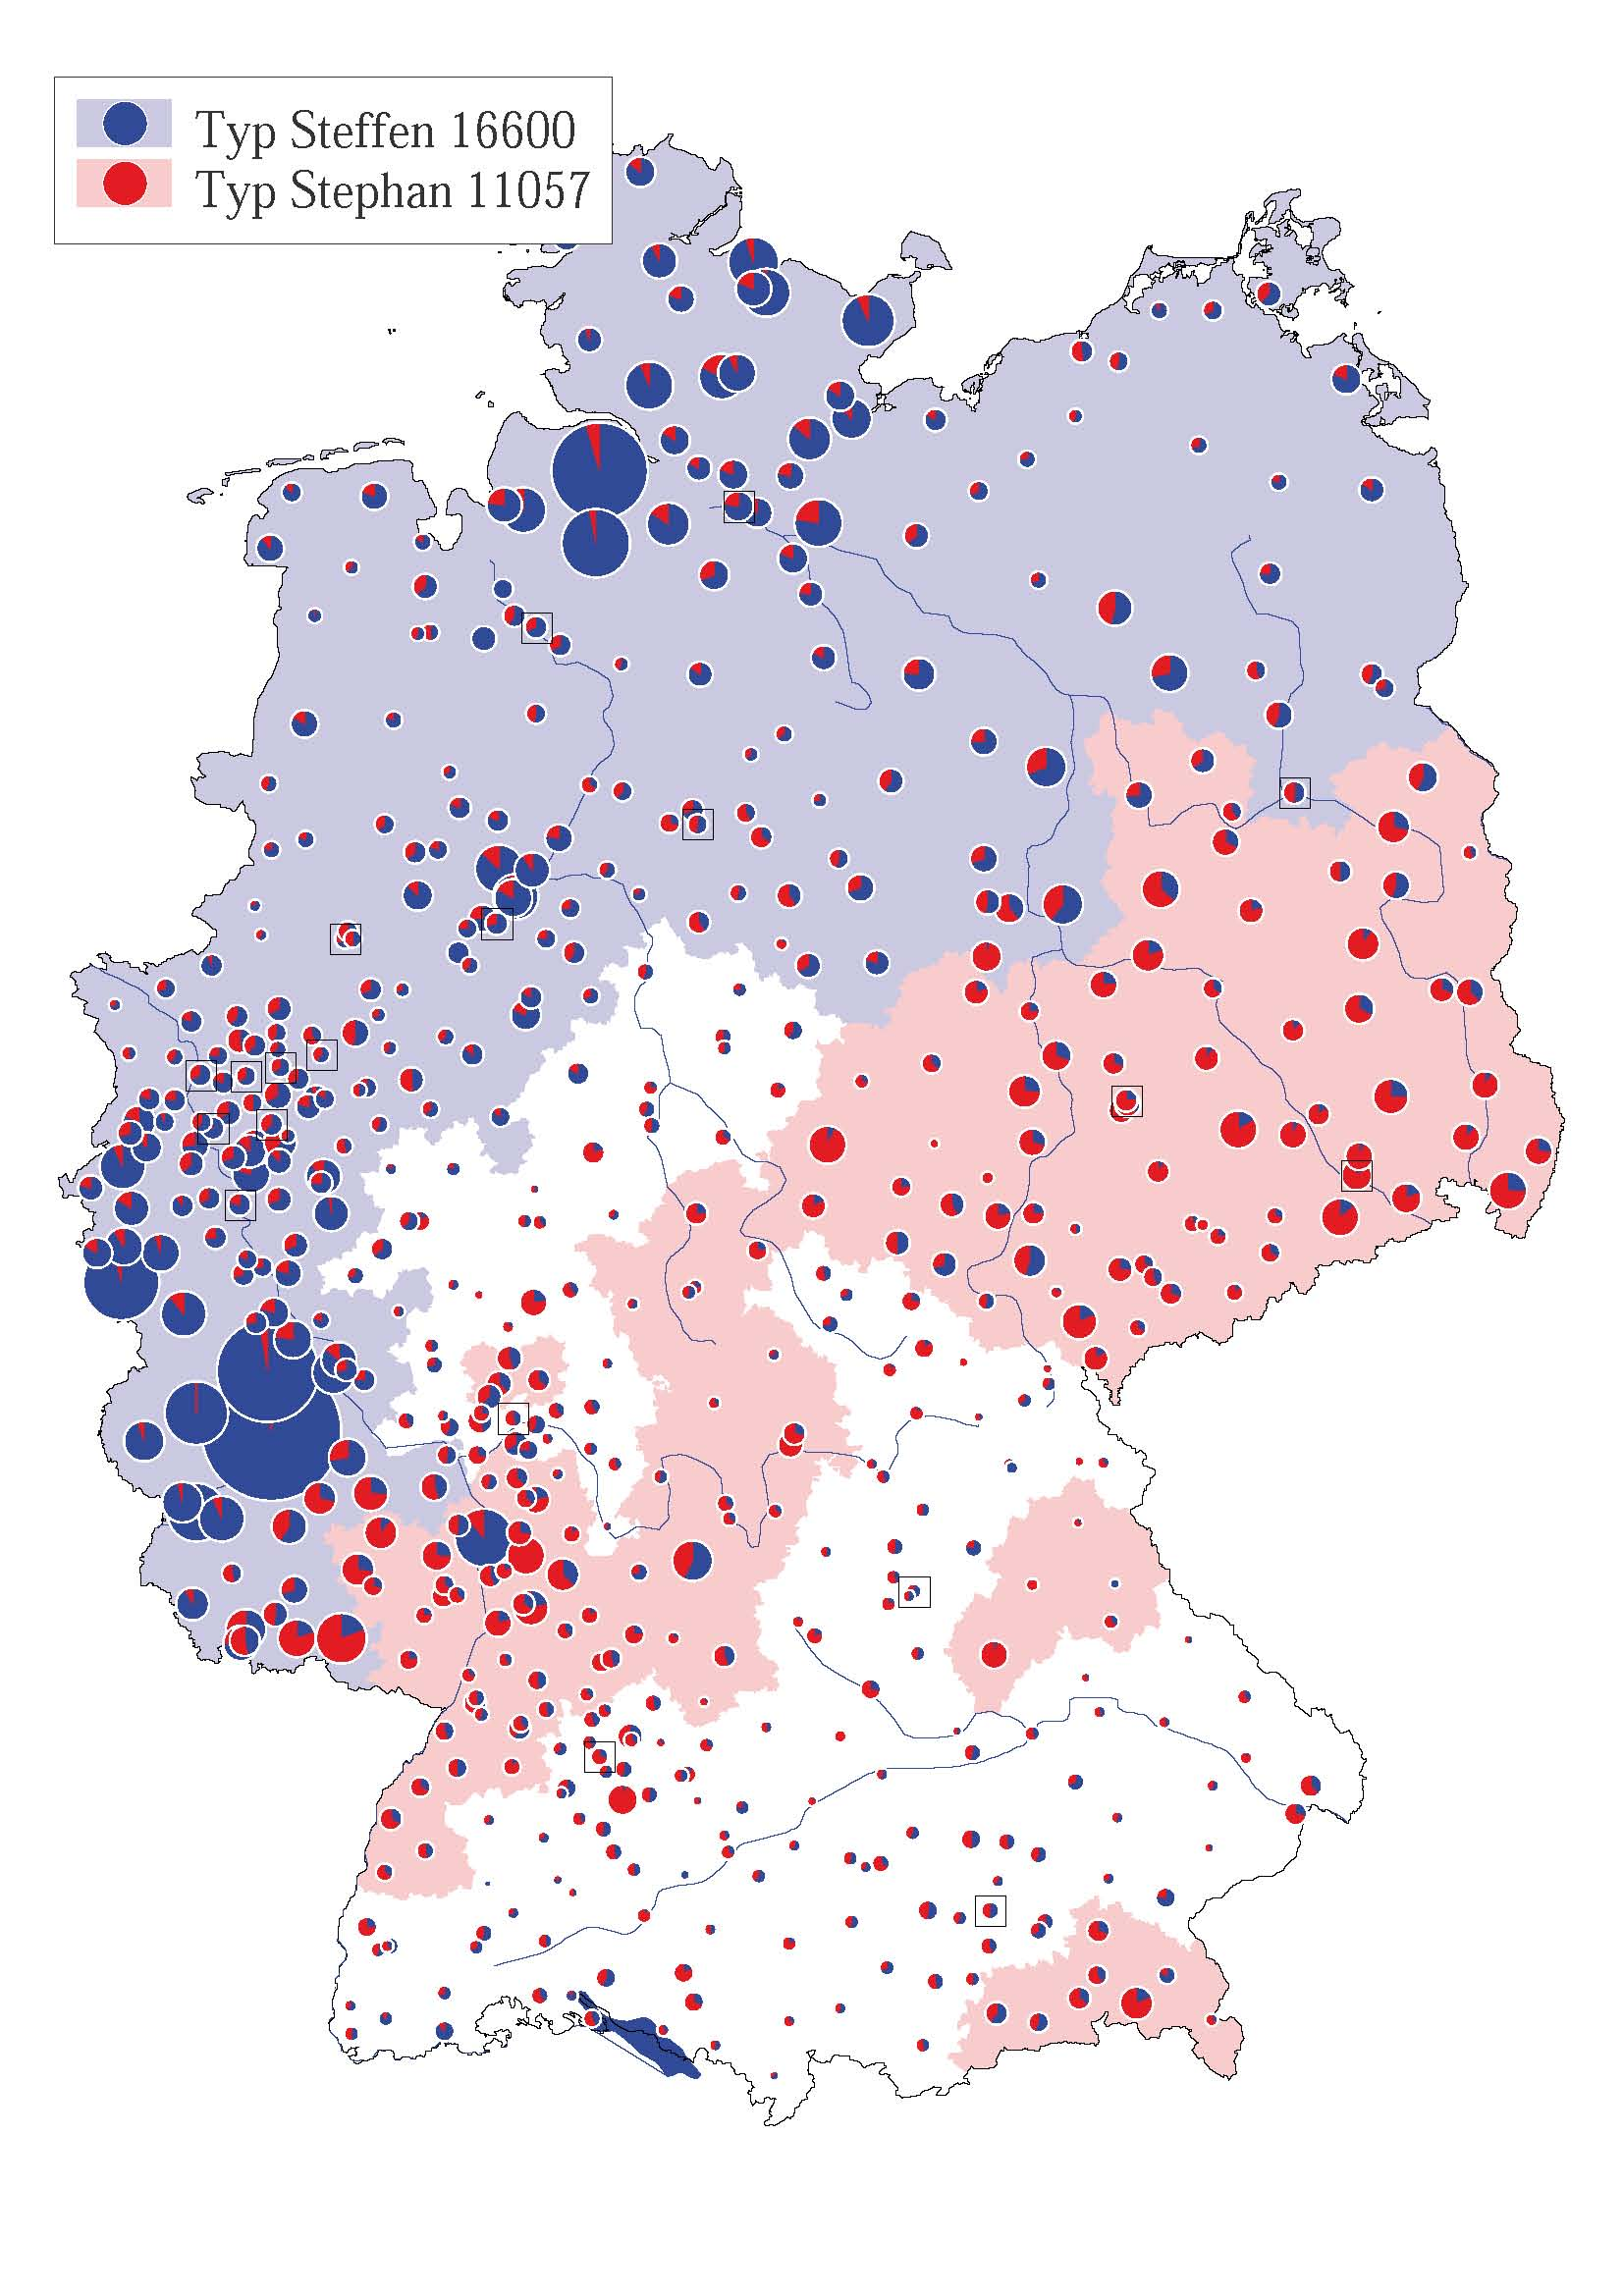 Second Volume Of The German Surname Atlas Published - Interactive us surnames map